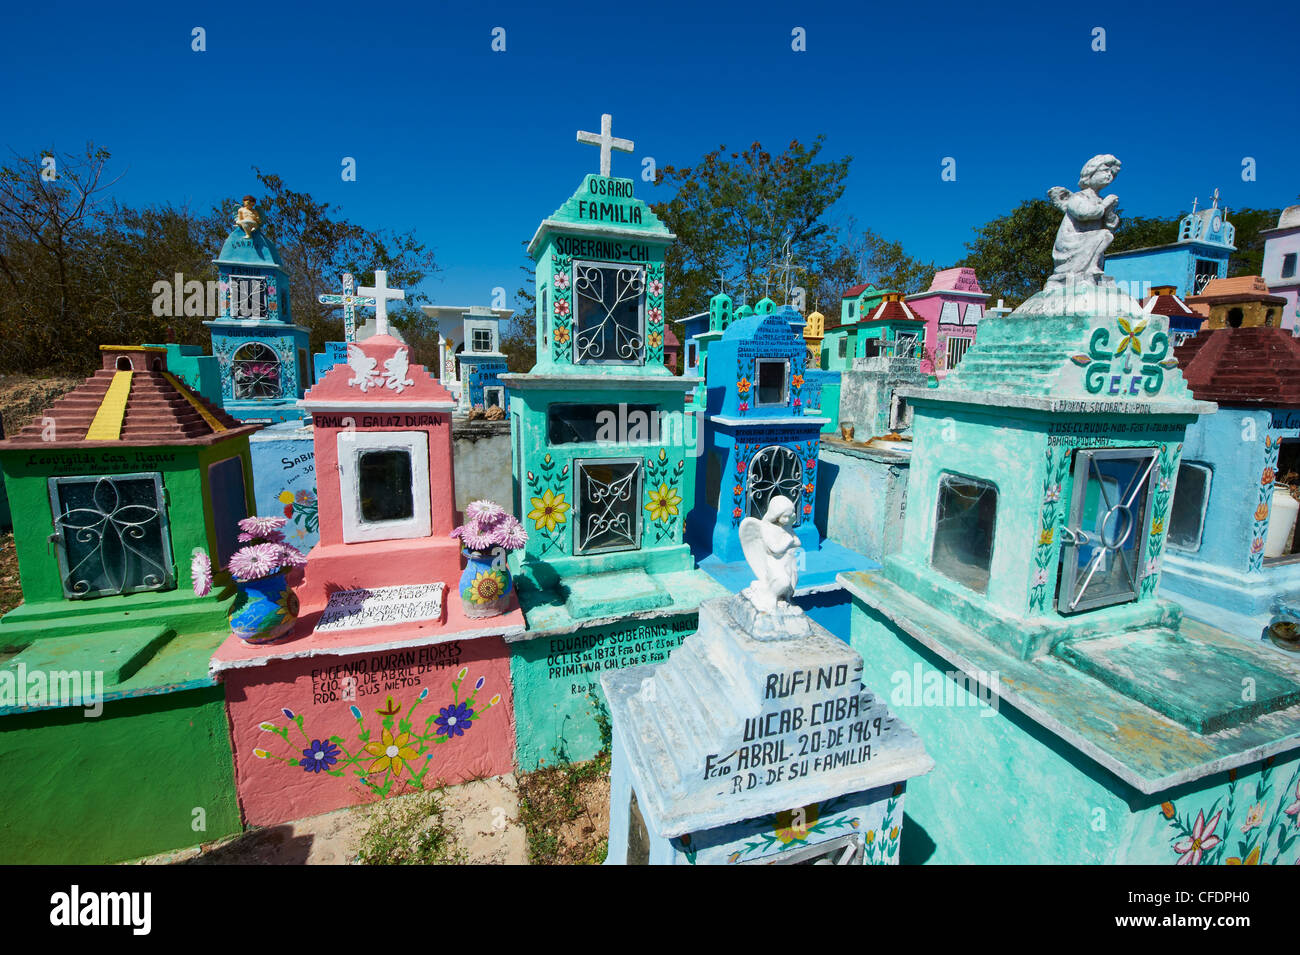 Mayan cemetery, Hoctun, Yucatan State, Mexico, - Stock Image